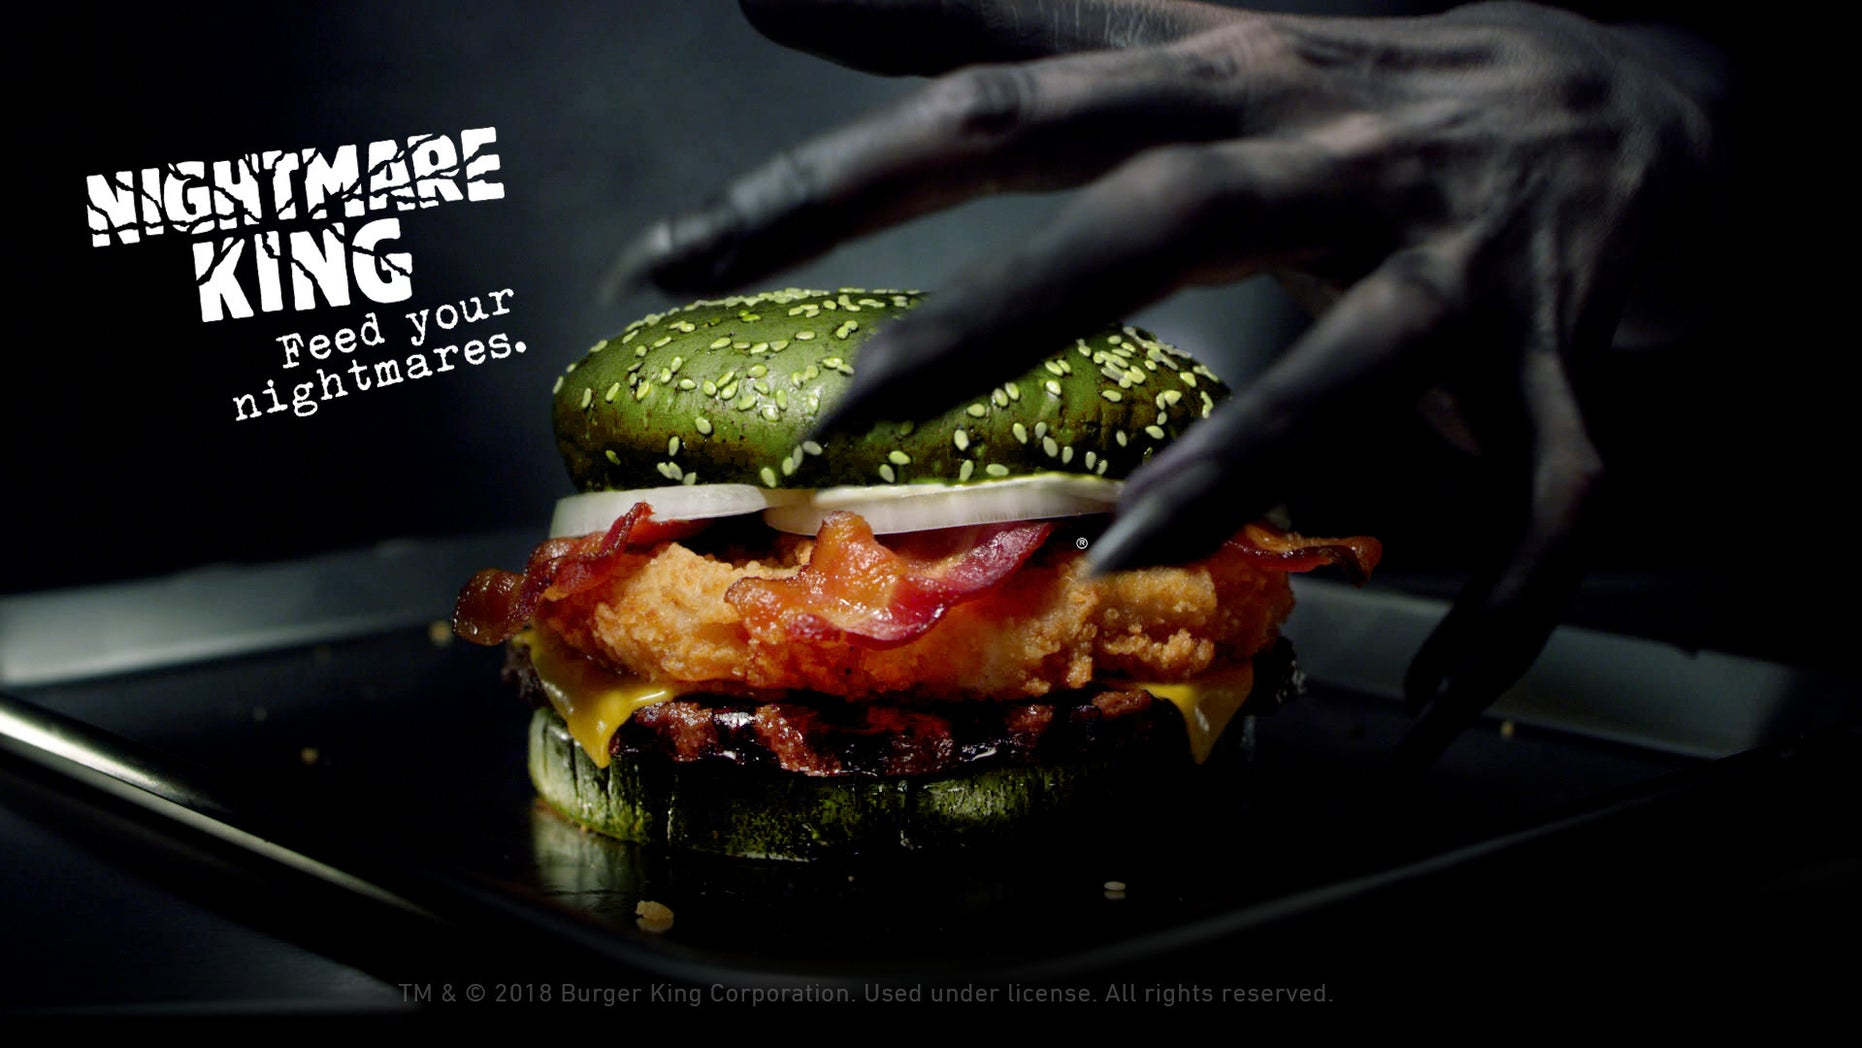 New Nightmare King Sandwich Coming To Burger King On October 22, 2018